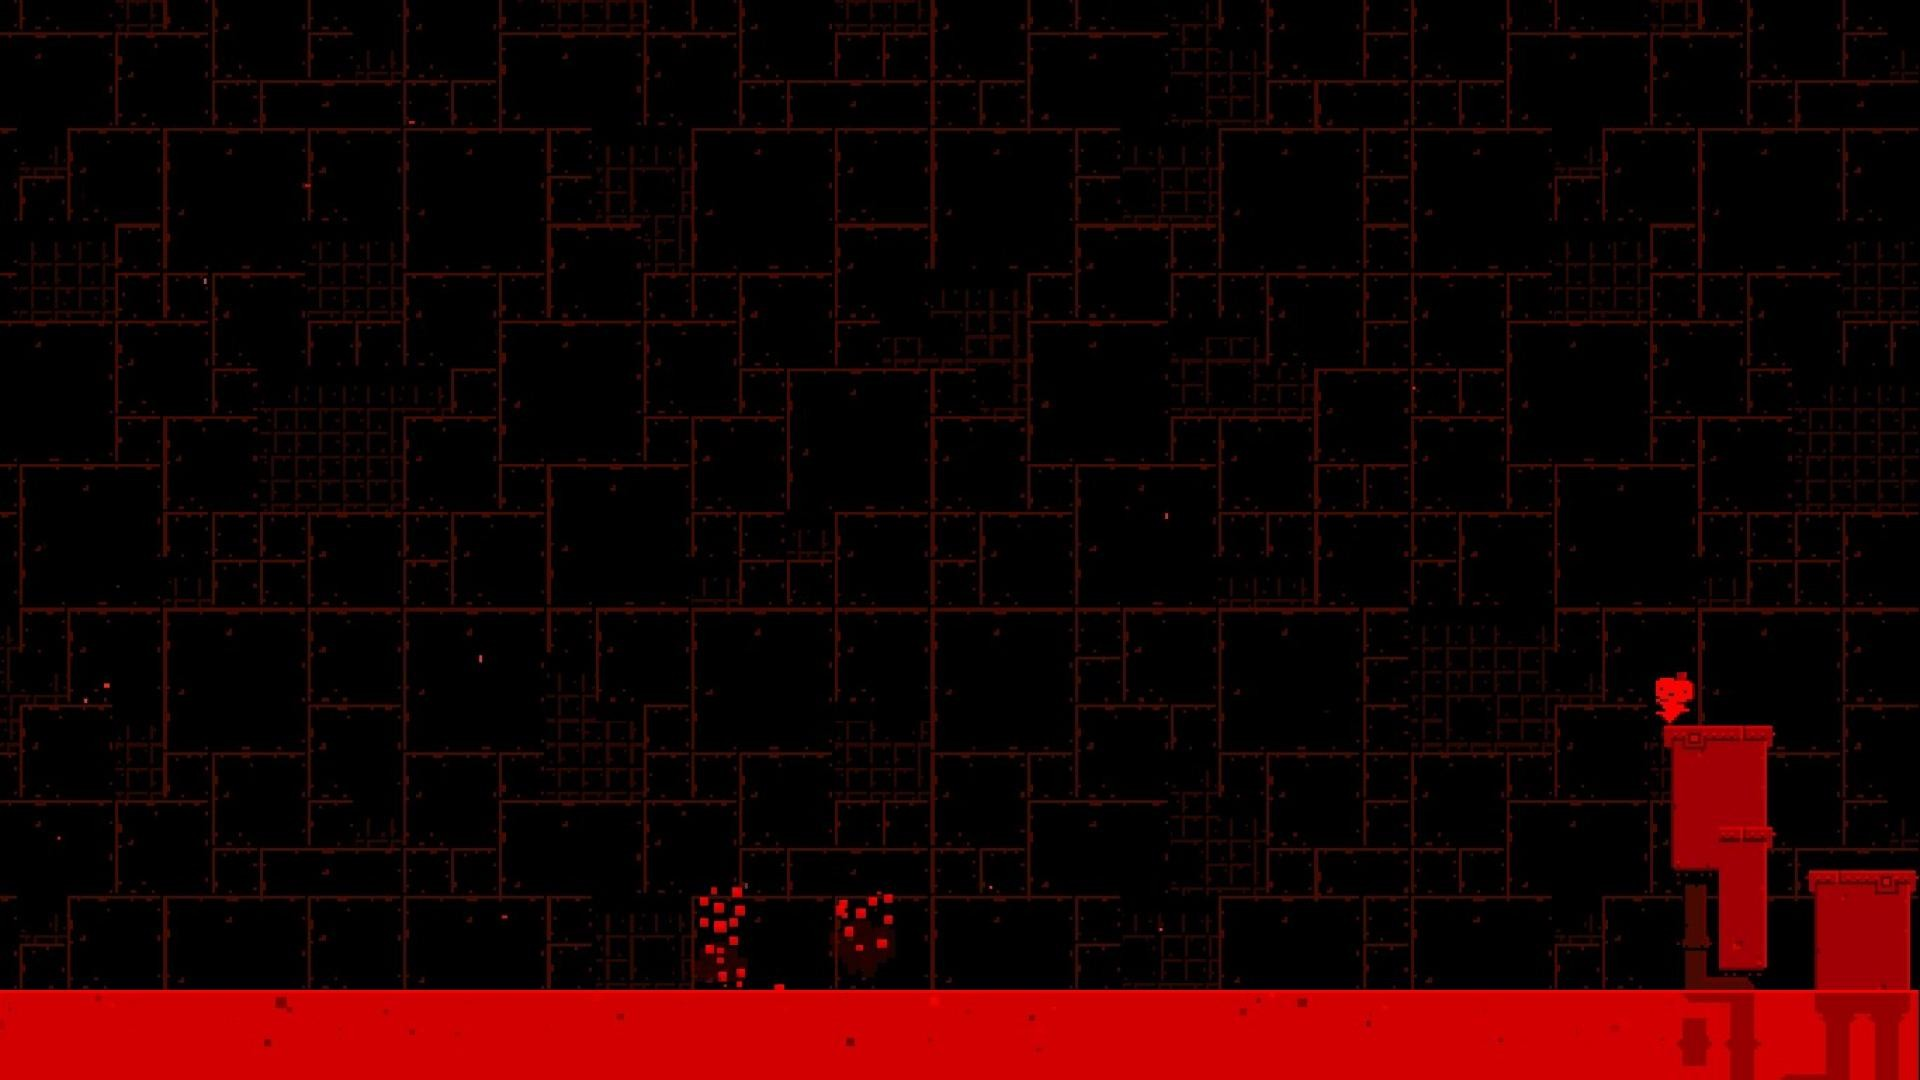 16 Bit Wallpaper Images & Pictures – Becuo